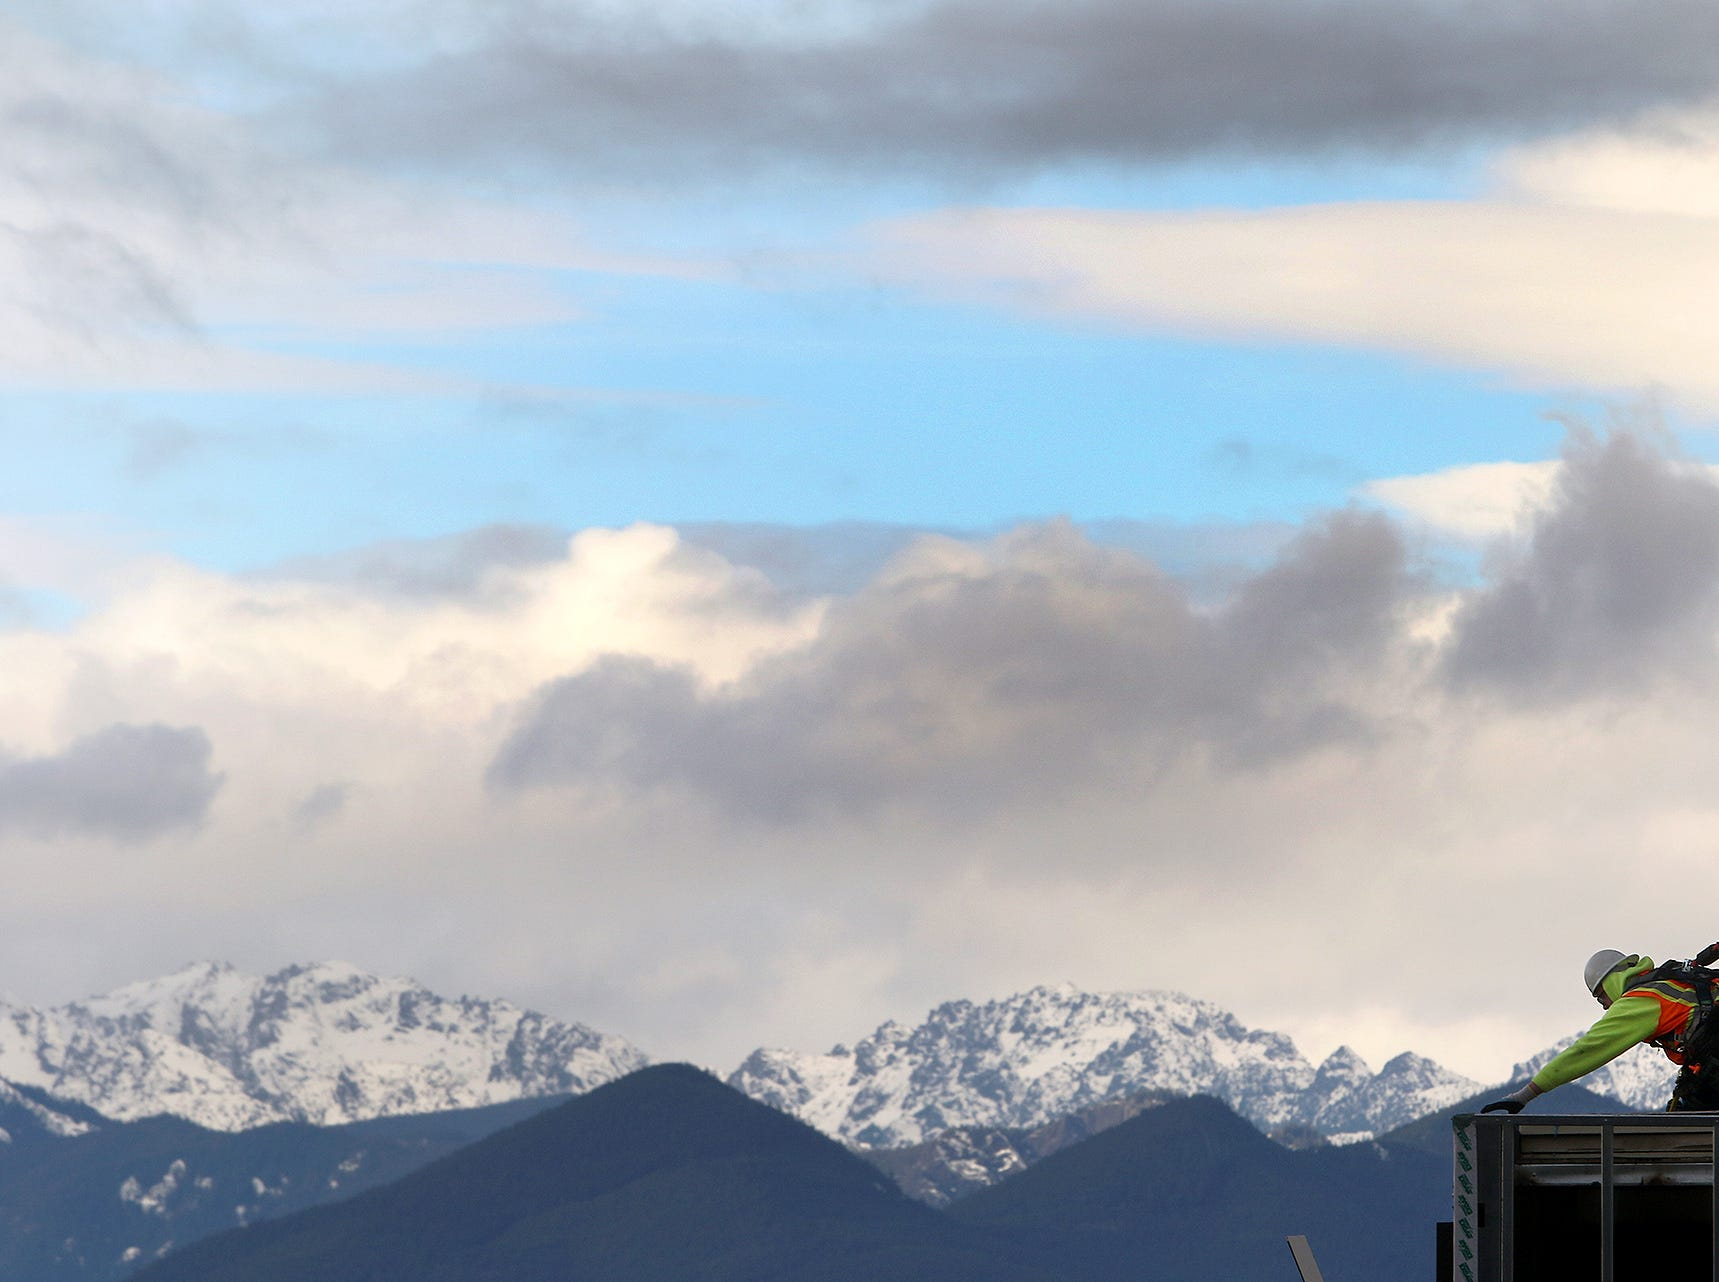 The Olympic Mountains peek out from the clouds on a cold day in Silverdale, behind construction workers at the Harrison Medical Center in Silverdale on Wednesday, January, 2, 2018.